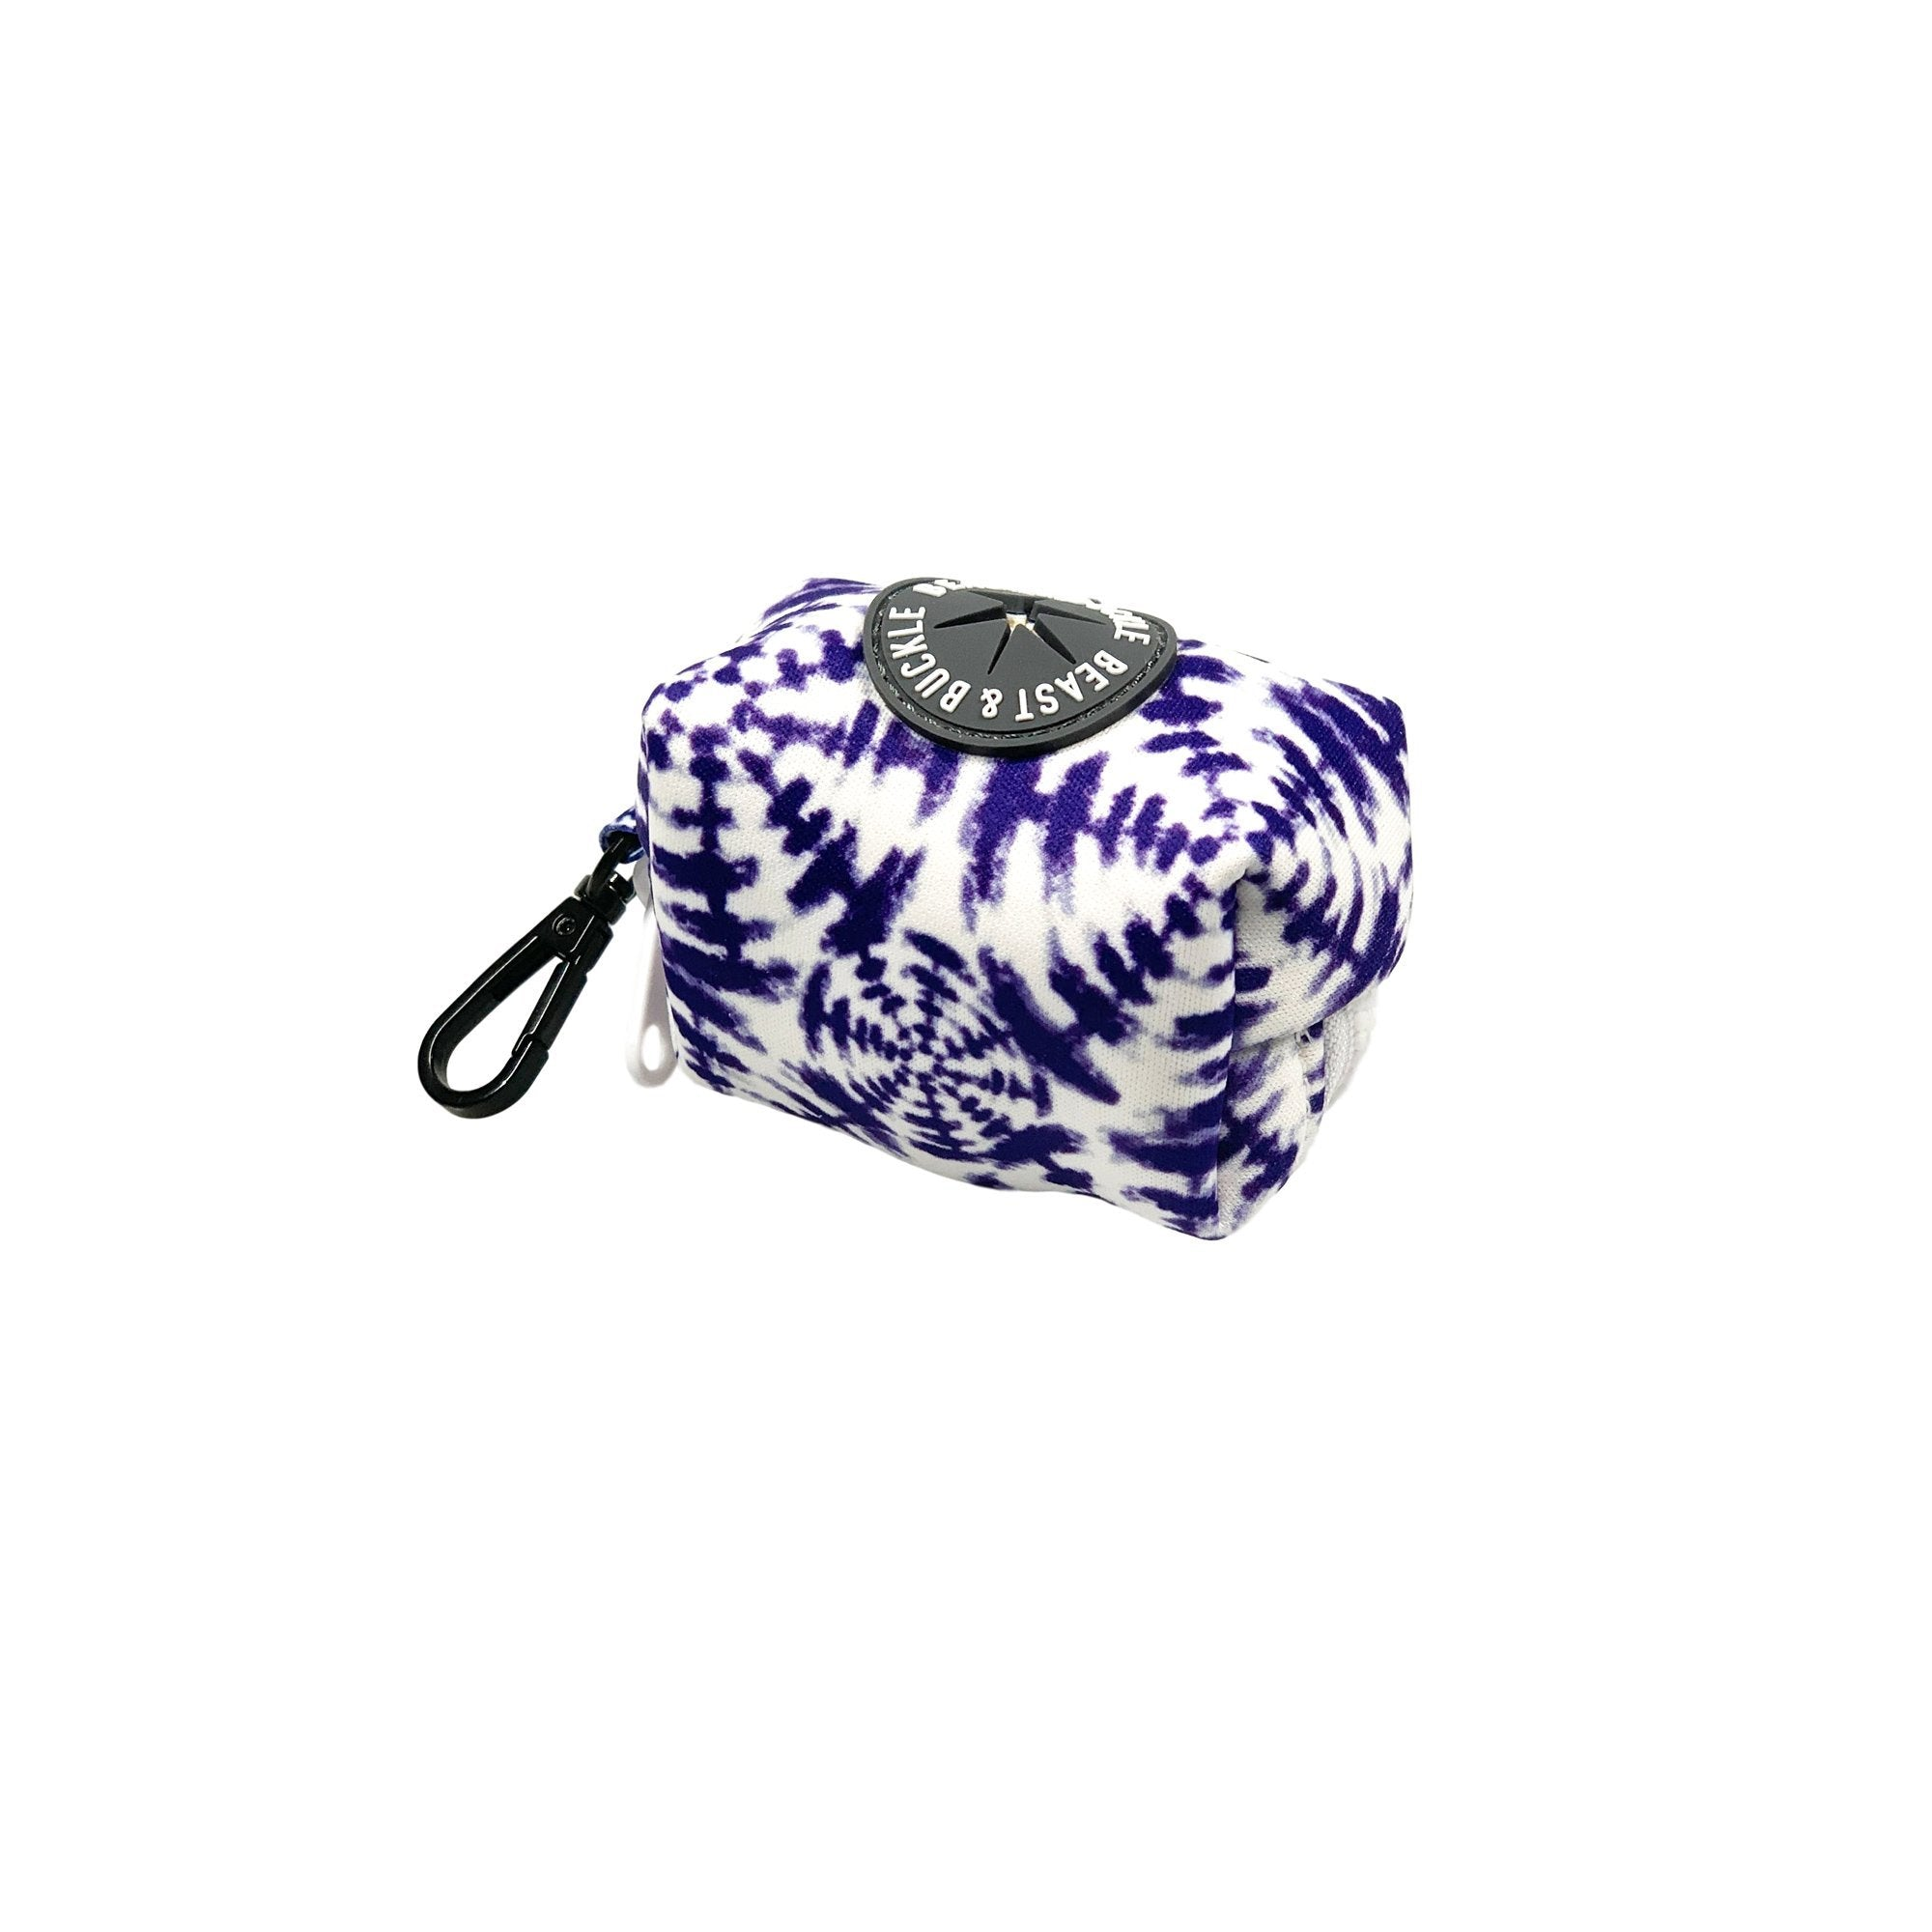 Shibori Tie Dye Poop Bag Holder - Beast & Buckle